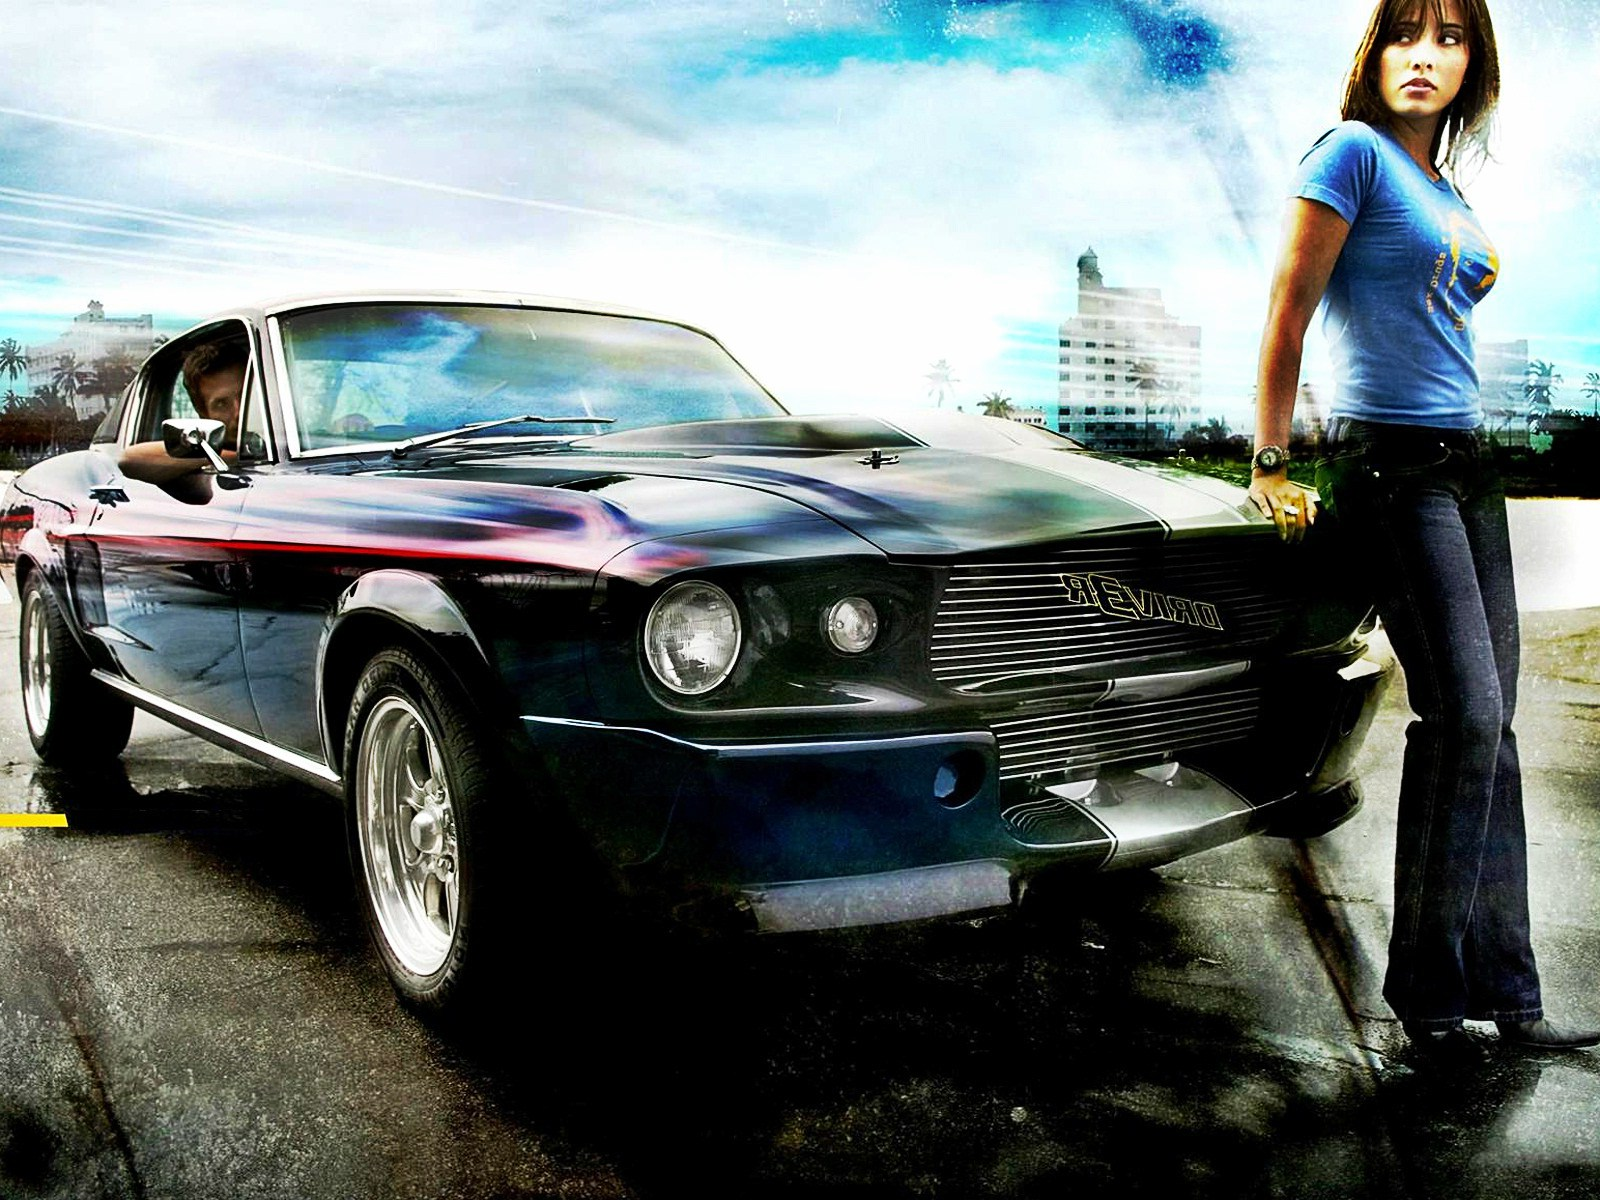 classic car with girl desktop wallpaper for background 1600x1200